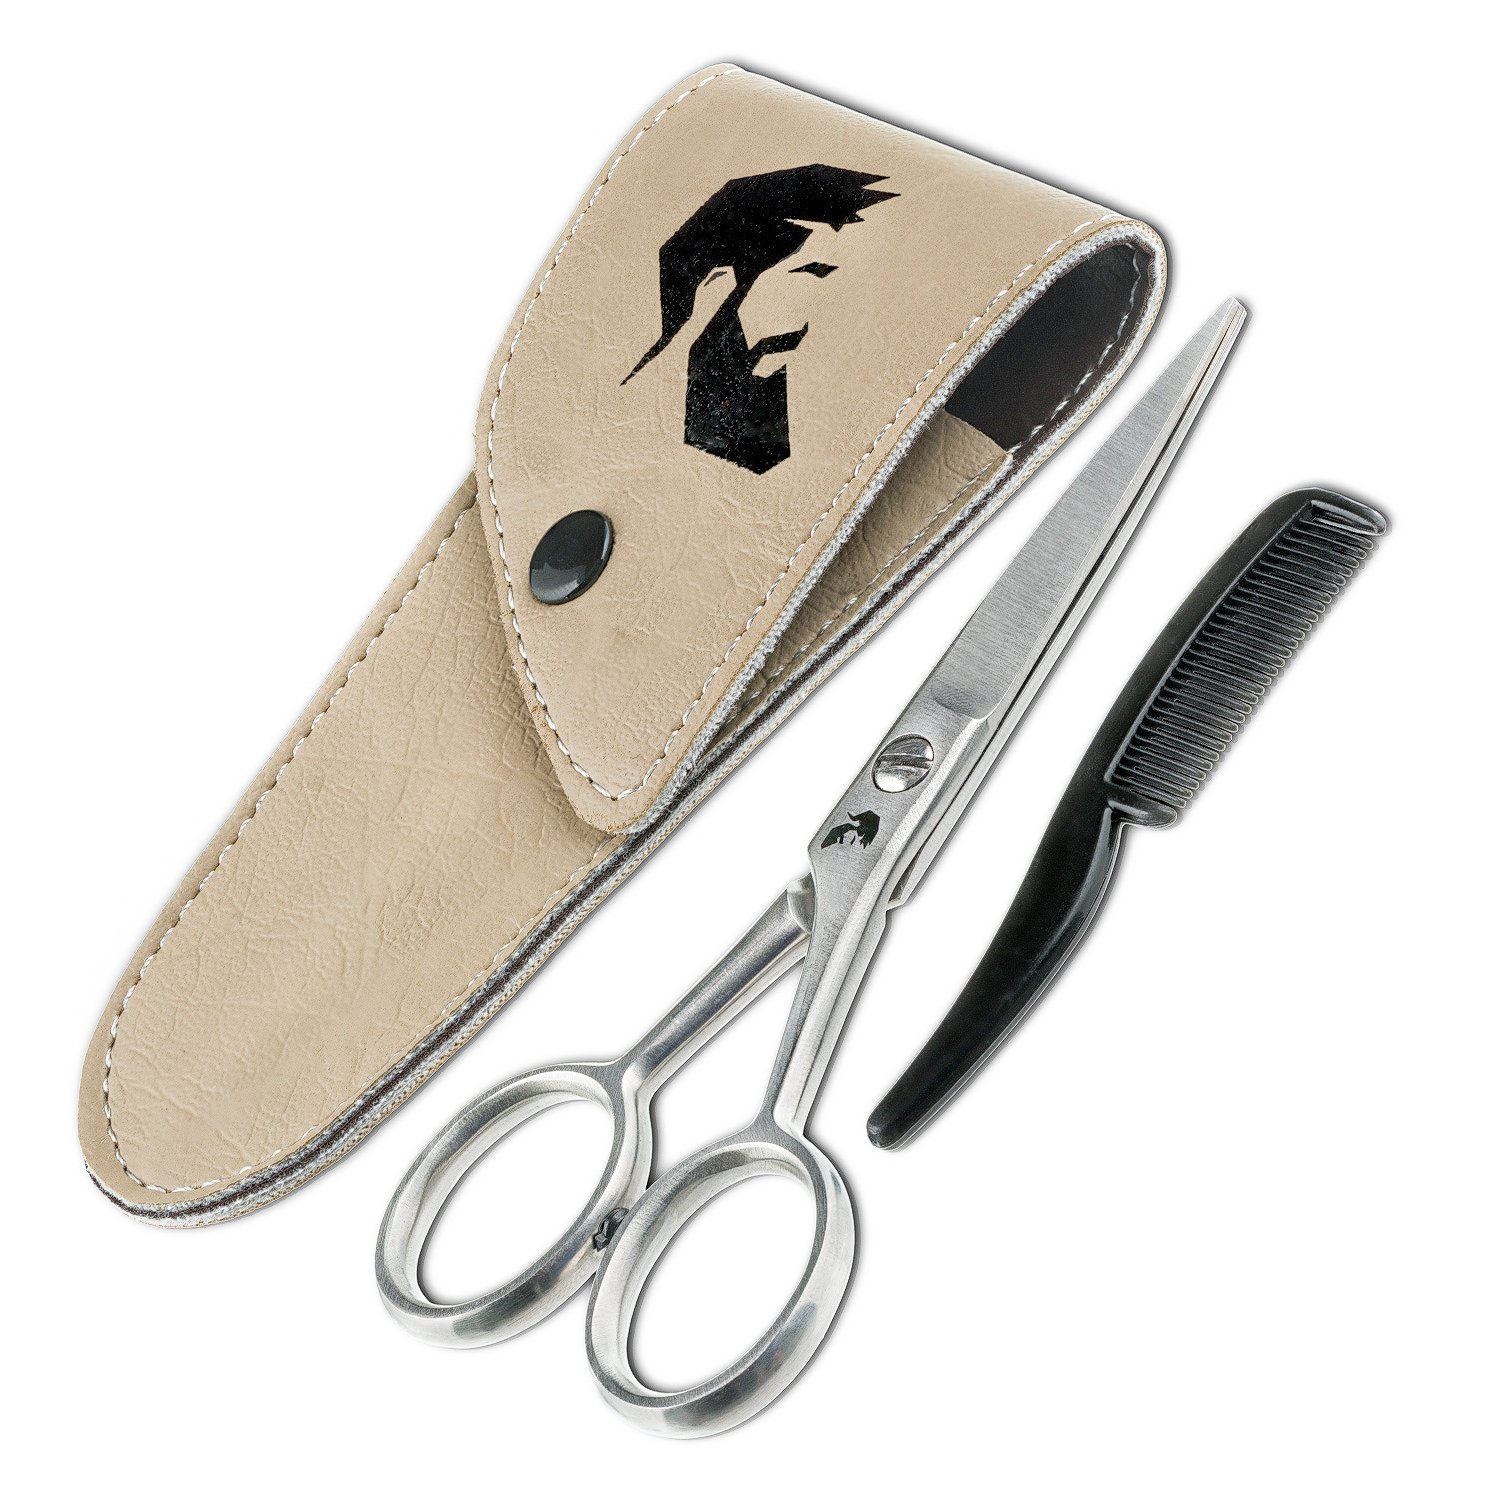 Professional Sharp and Precise Beard Scissors with Comb and Leather Pouch for Men with Comfort Grip for Trimming Grooming Cutting Mustache, Hair Splinters, Eyebrows and more